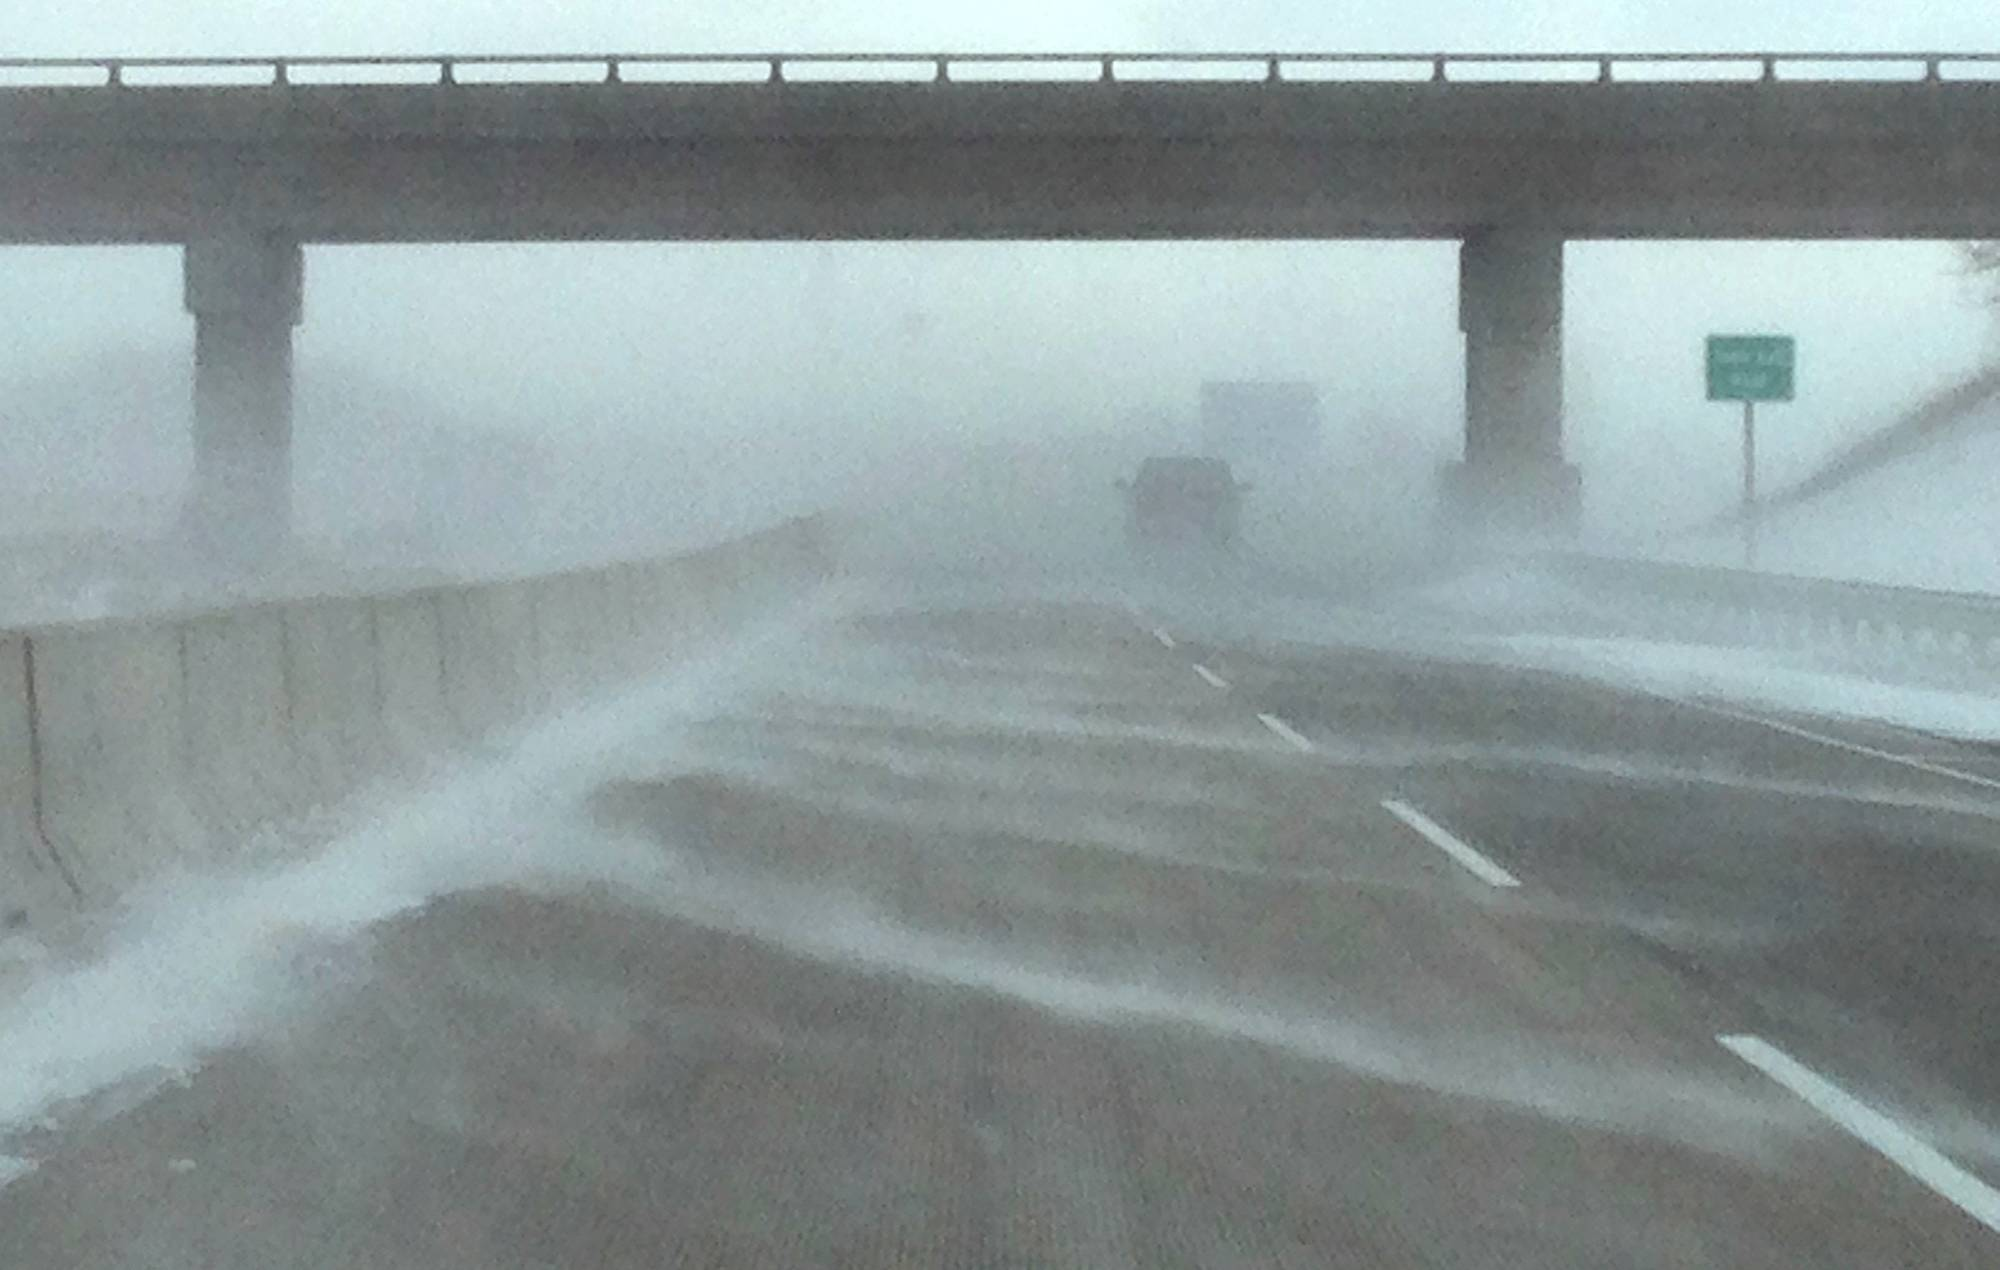 Christopher Hankins/chankins@daillyherald.comStrong winds created near white-out conditions on the eastbound Jane Addams Tollway west of Elgin Friday morning.